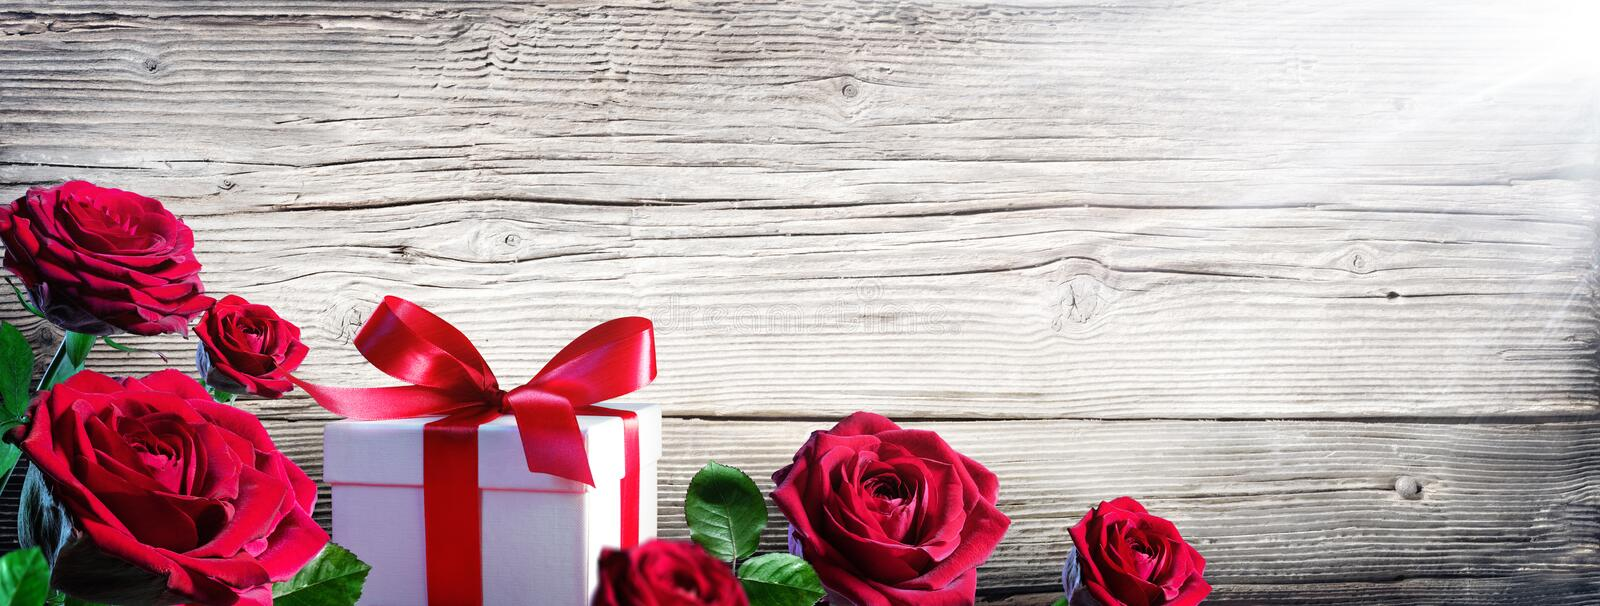 Gift Box And Roses royalty free stock image